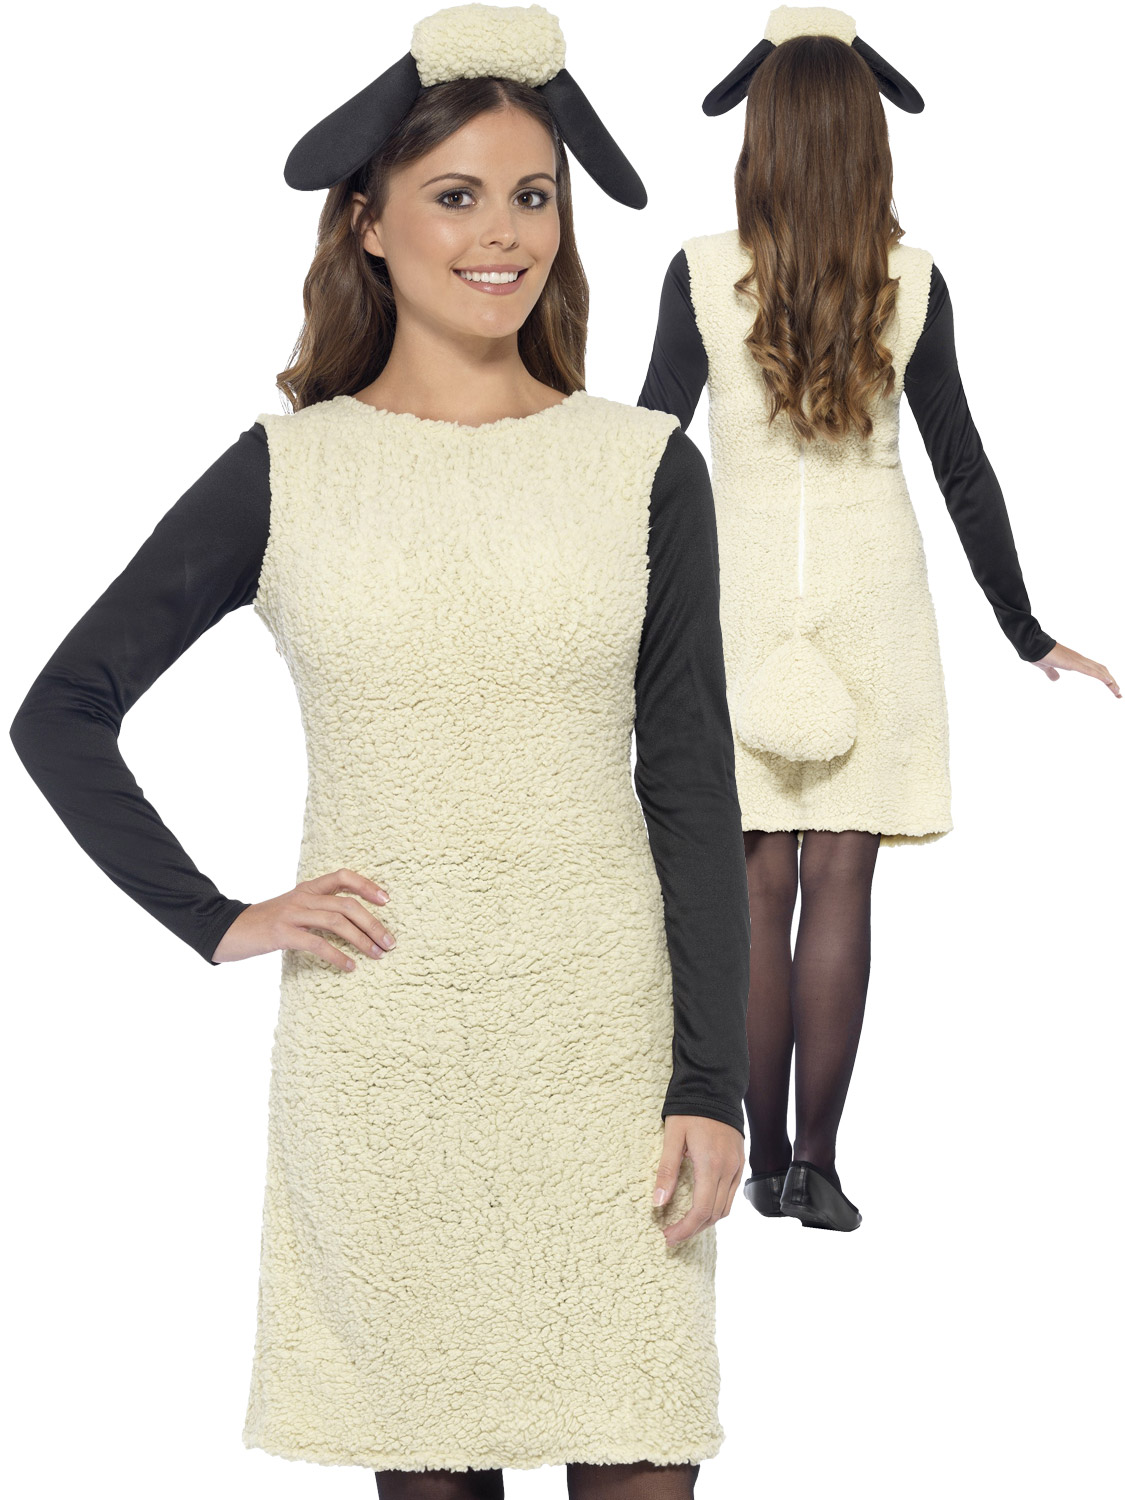 Image 2  sc 1 st  eBay & Ladies Shaun the Sheep Costume Adult Wallace and Gromit Fancy Dress ...